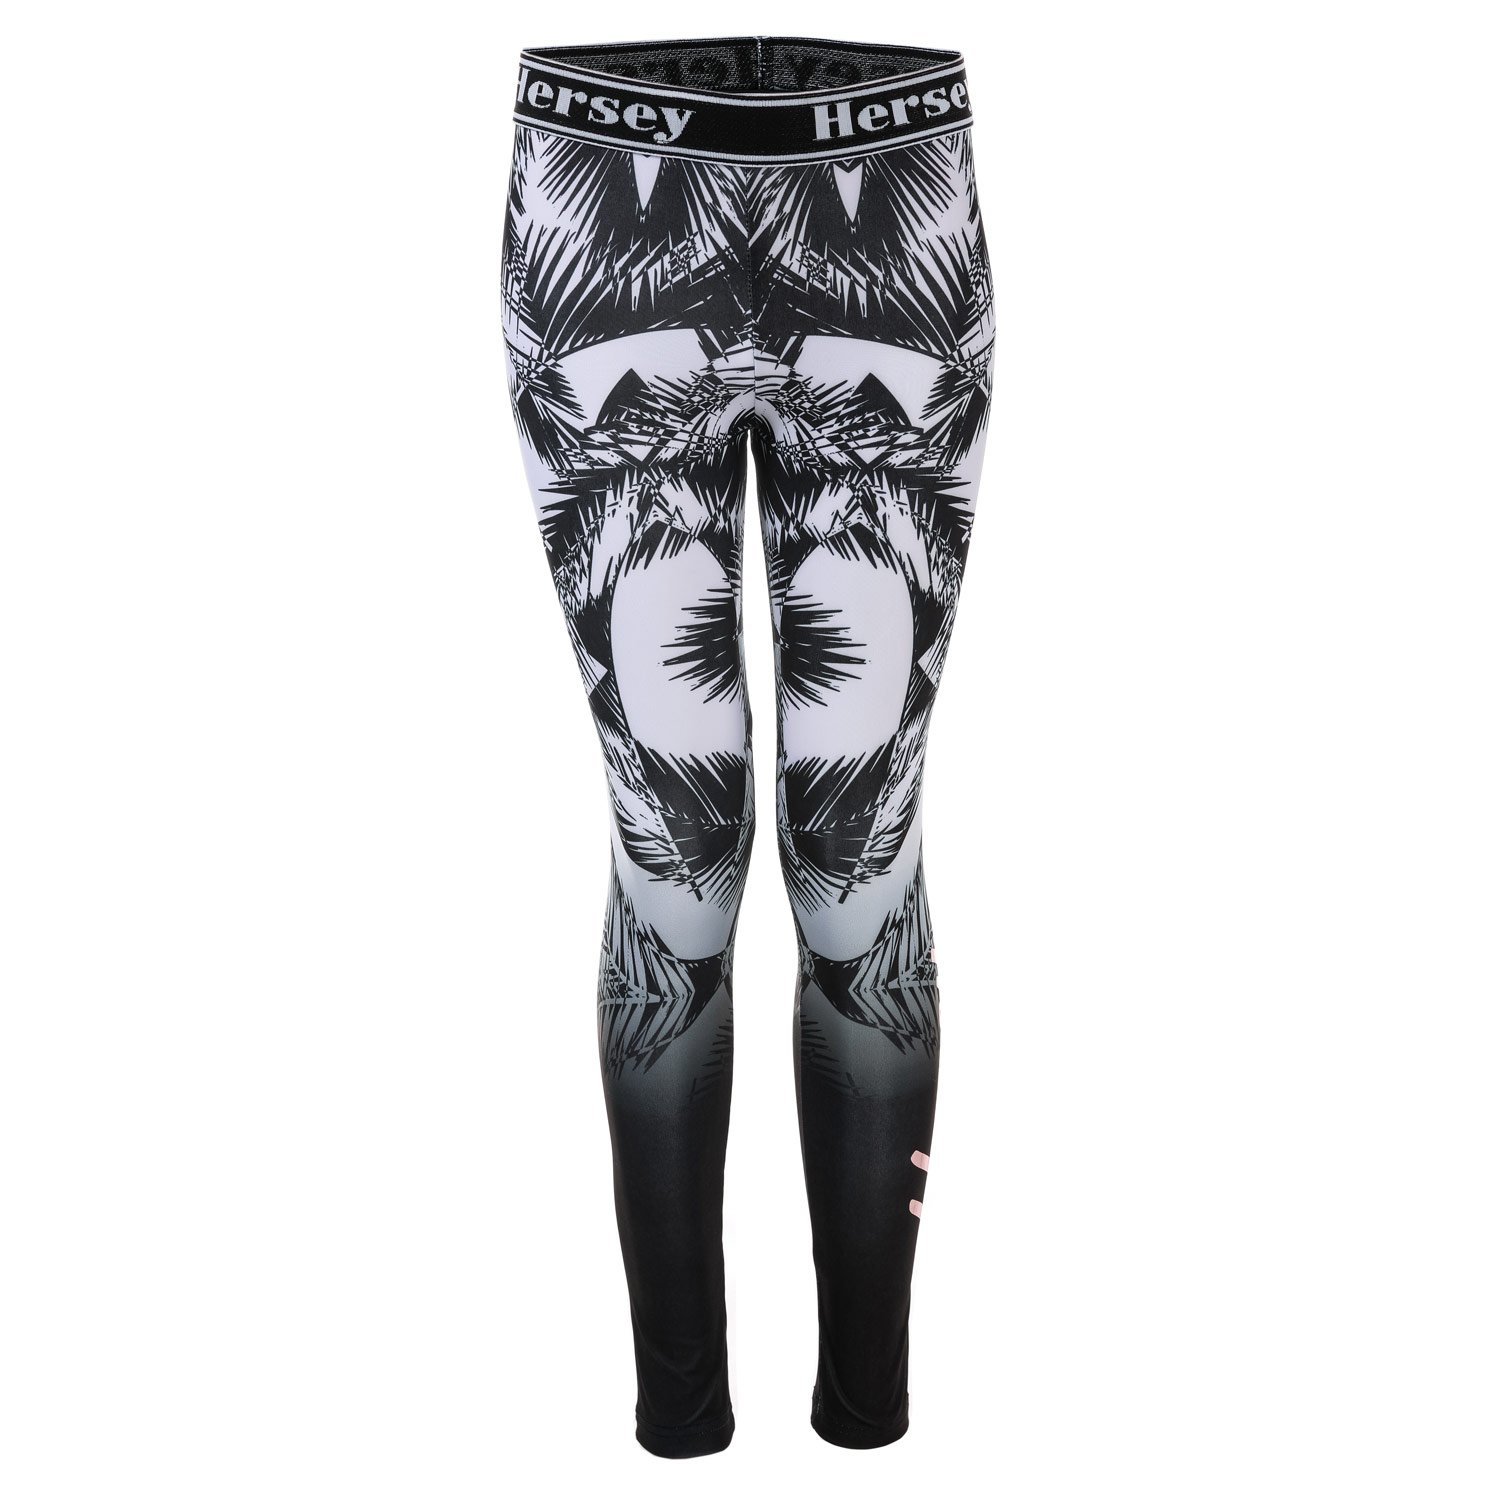 Beck and Hersey Girls Feather Legging